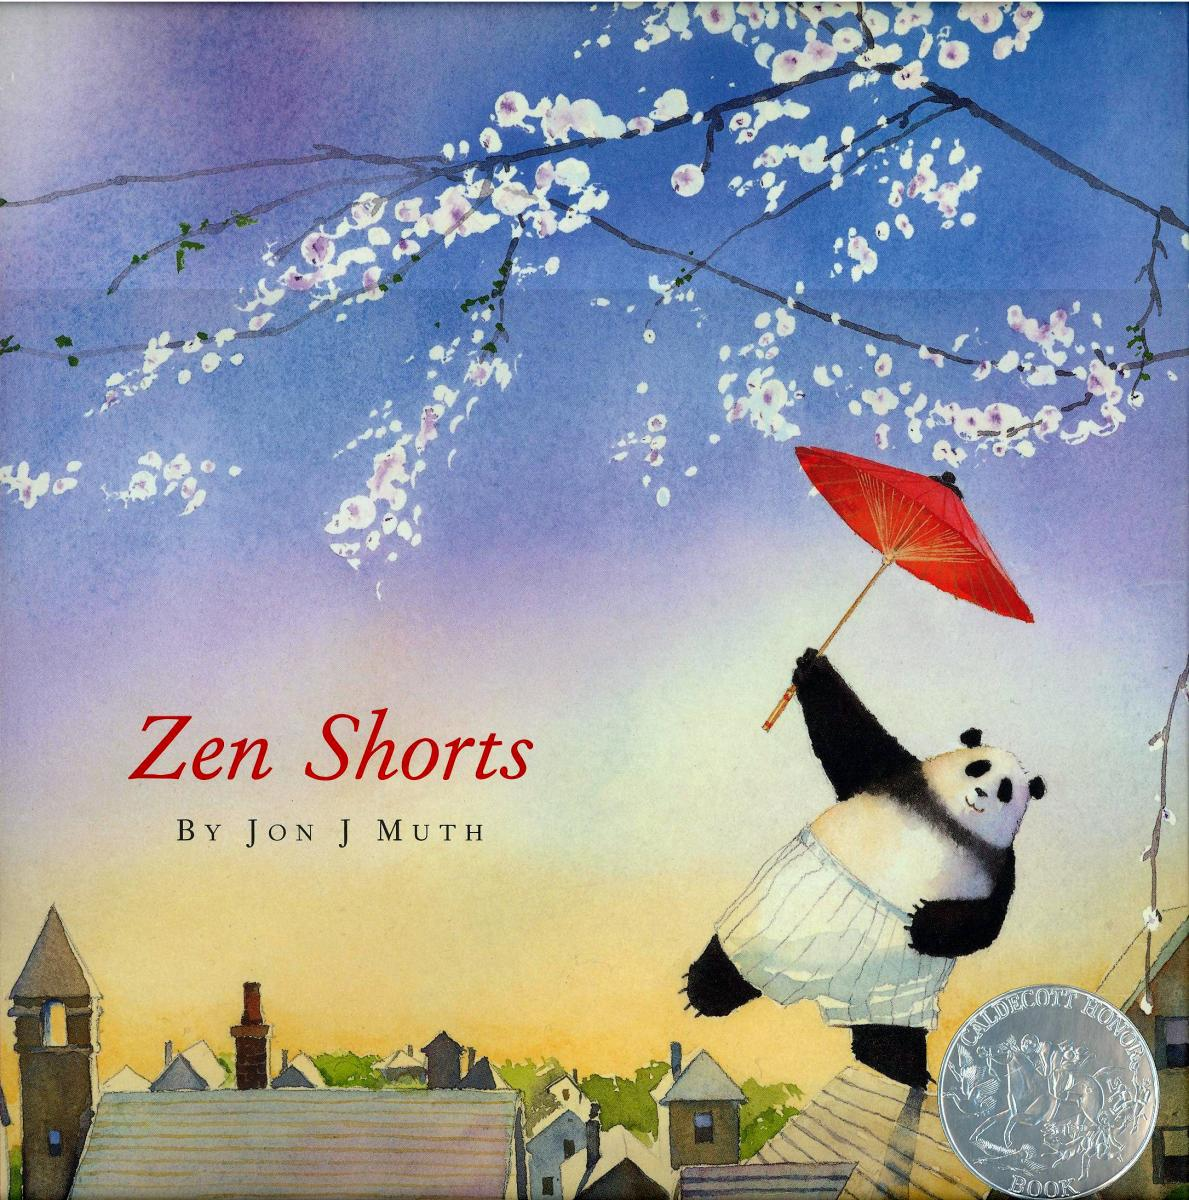 Zen Shorts - book cover image